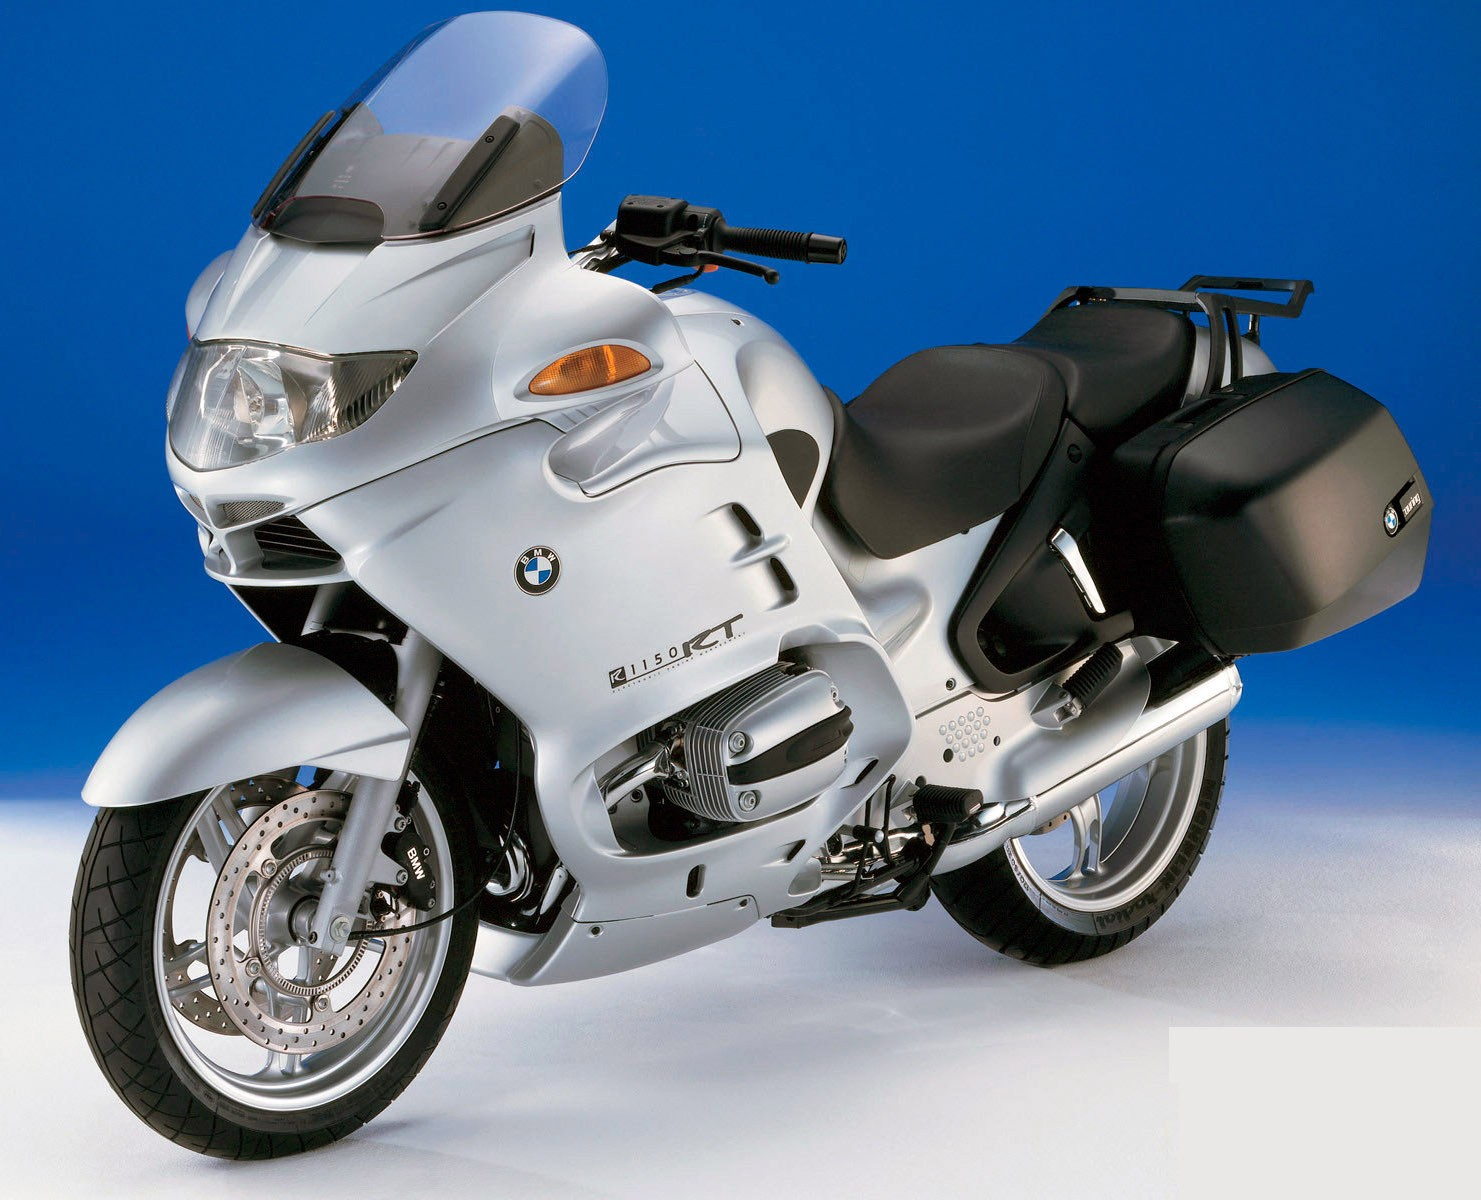 1999 bmw r1100rt r1100rs r850gs r1100gs r850r r1100r service repair manual  pdf Array - bmw r 1100 rt specs 1998 1999 autoevolution rh autoevolution com